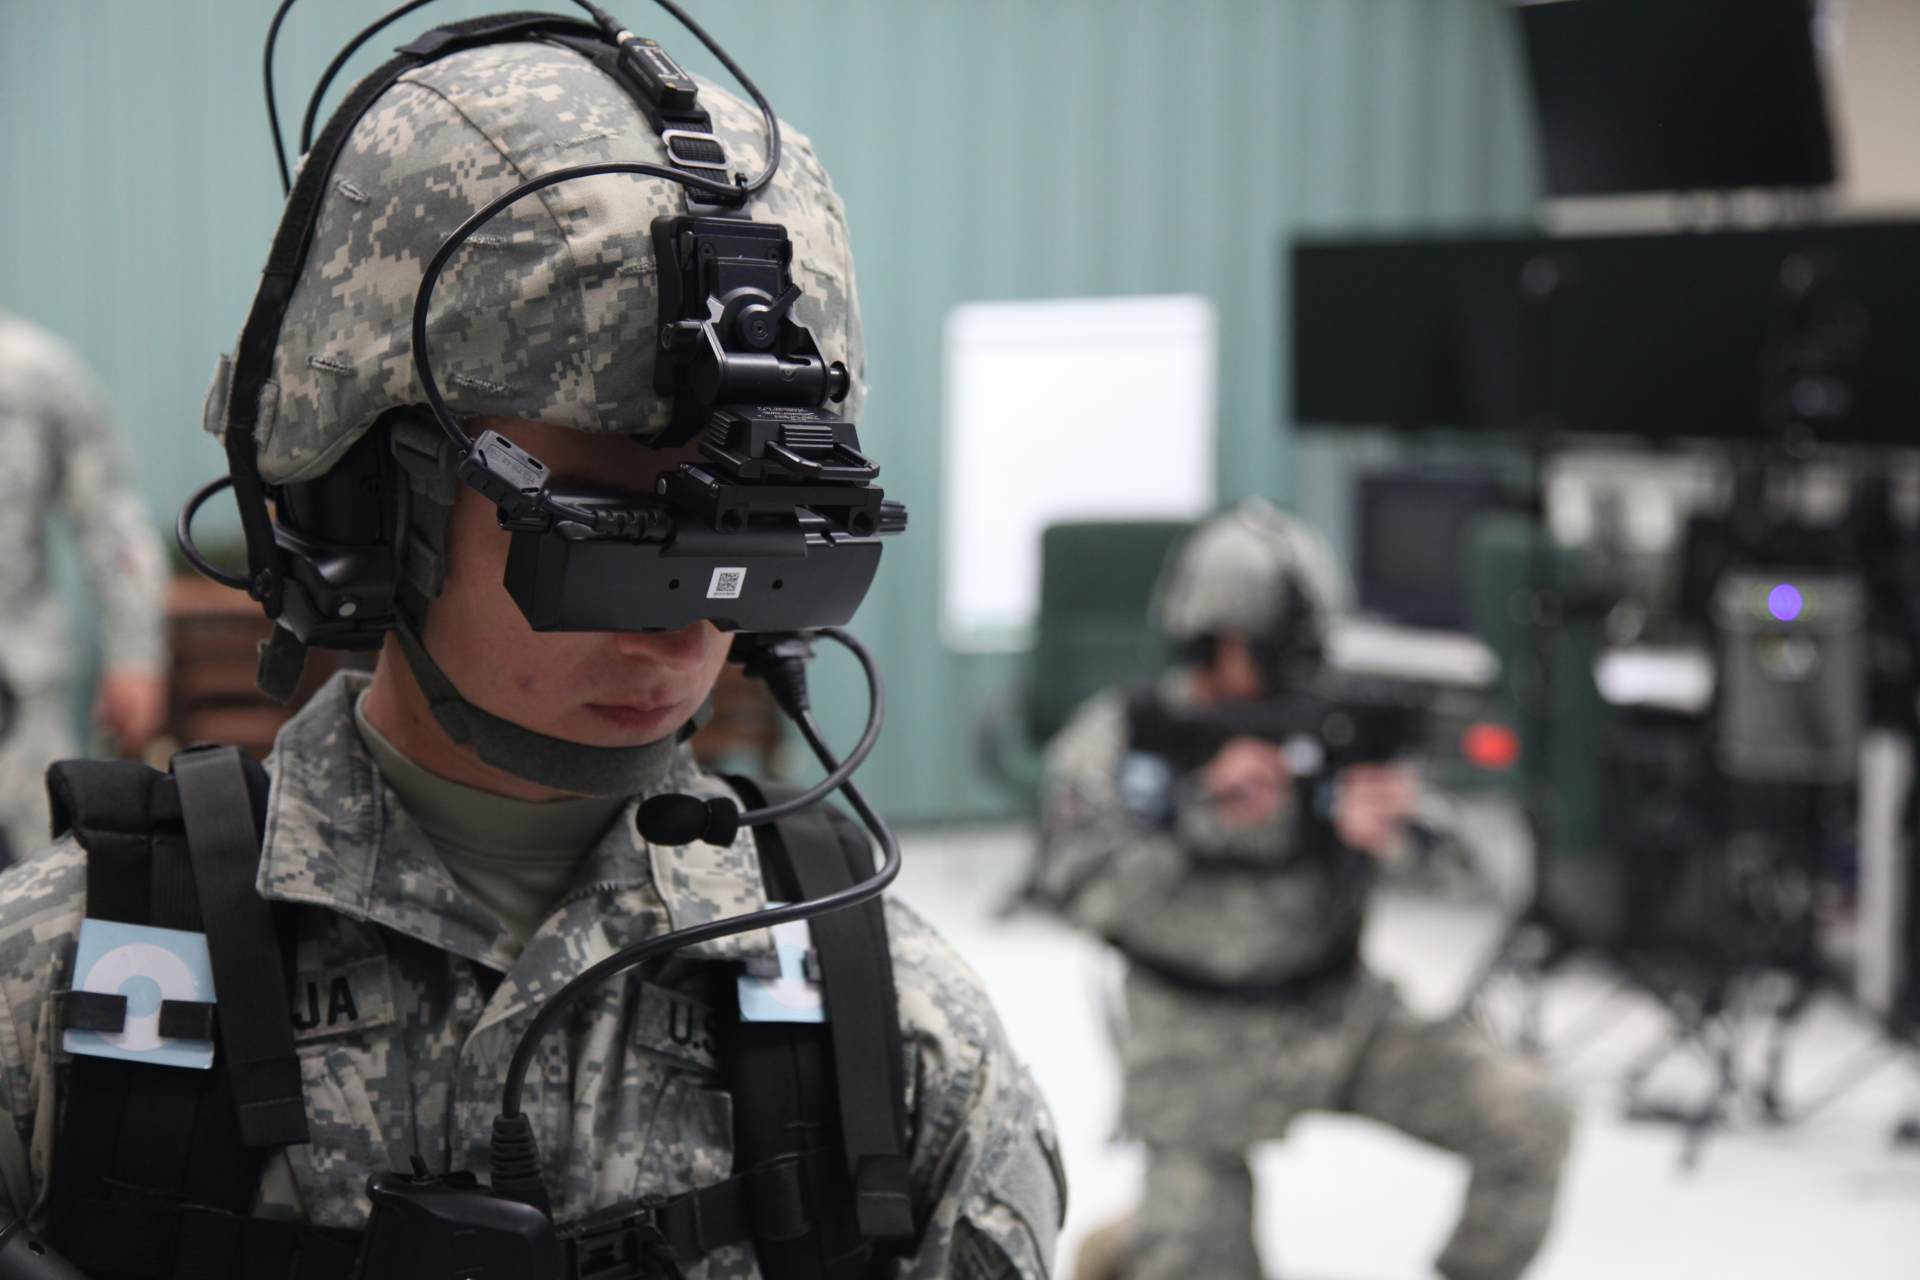 Virtual_reality_training_130417-A-BZ540-114